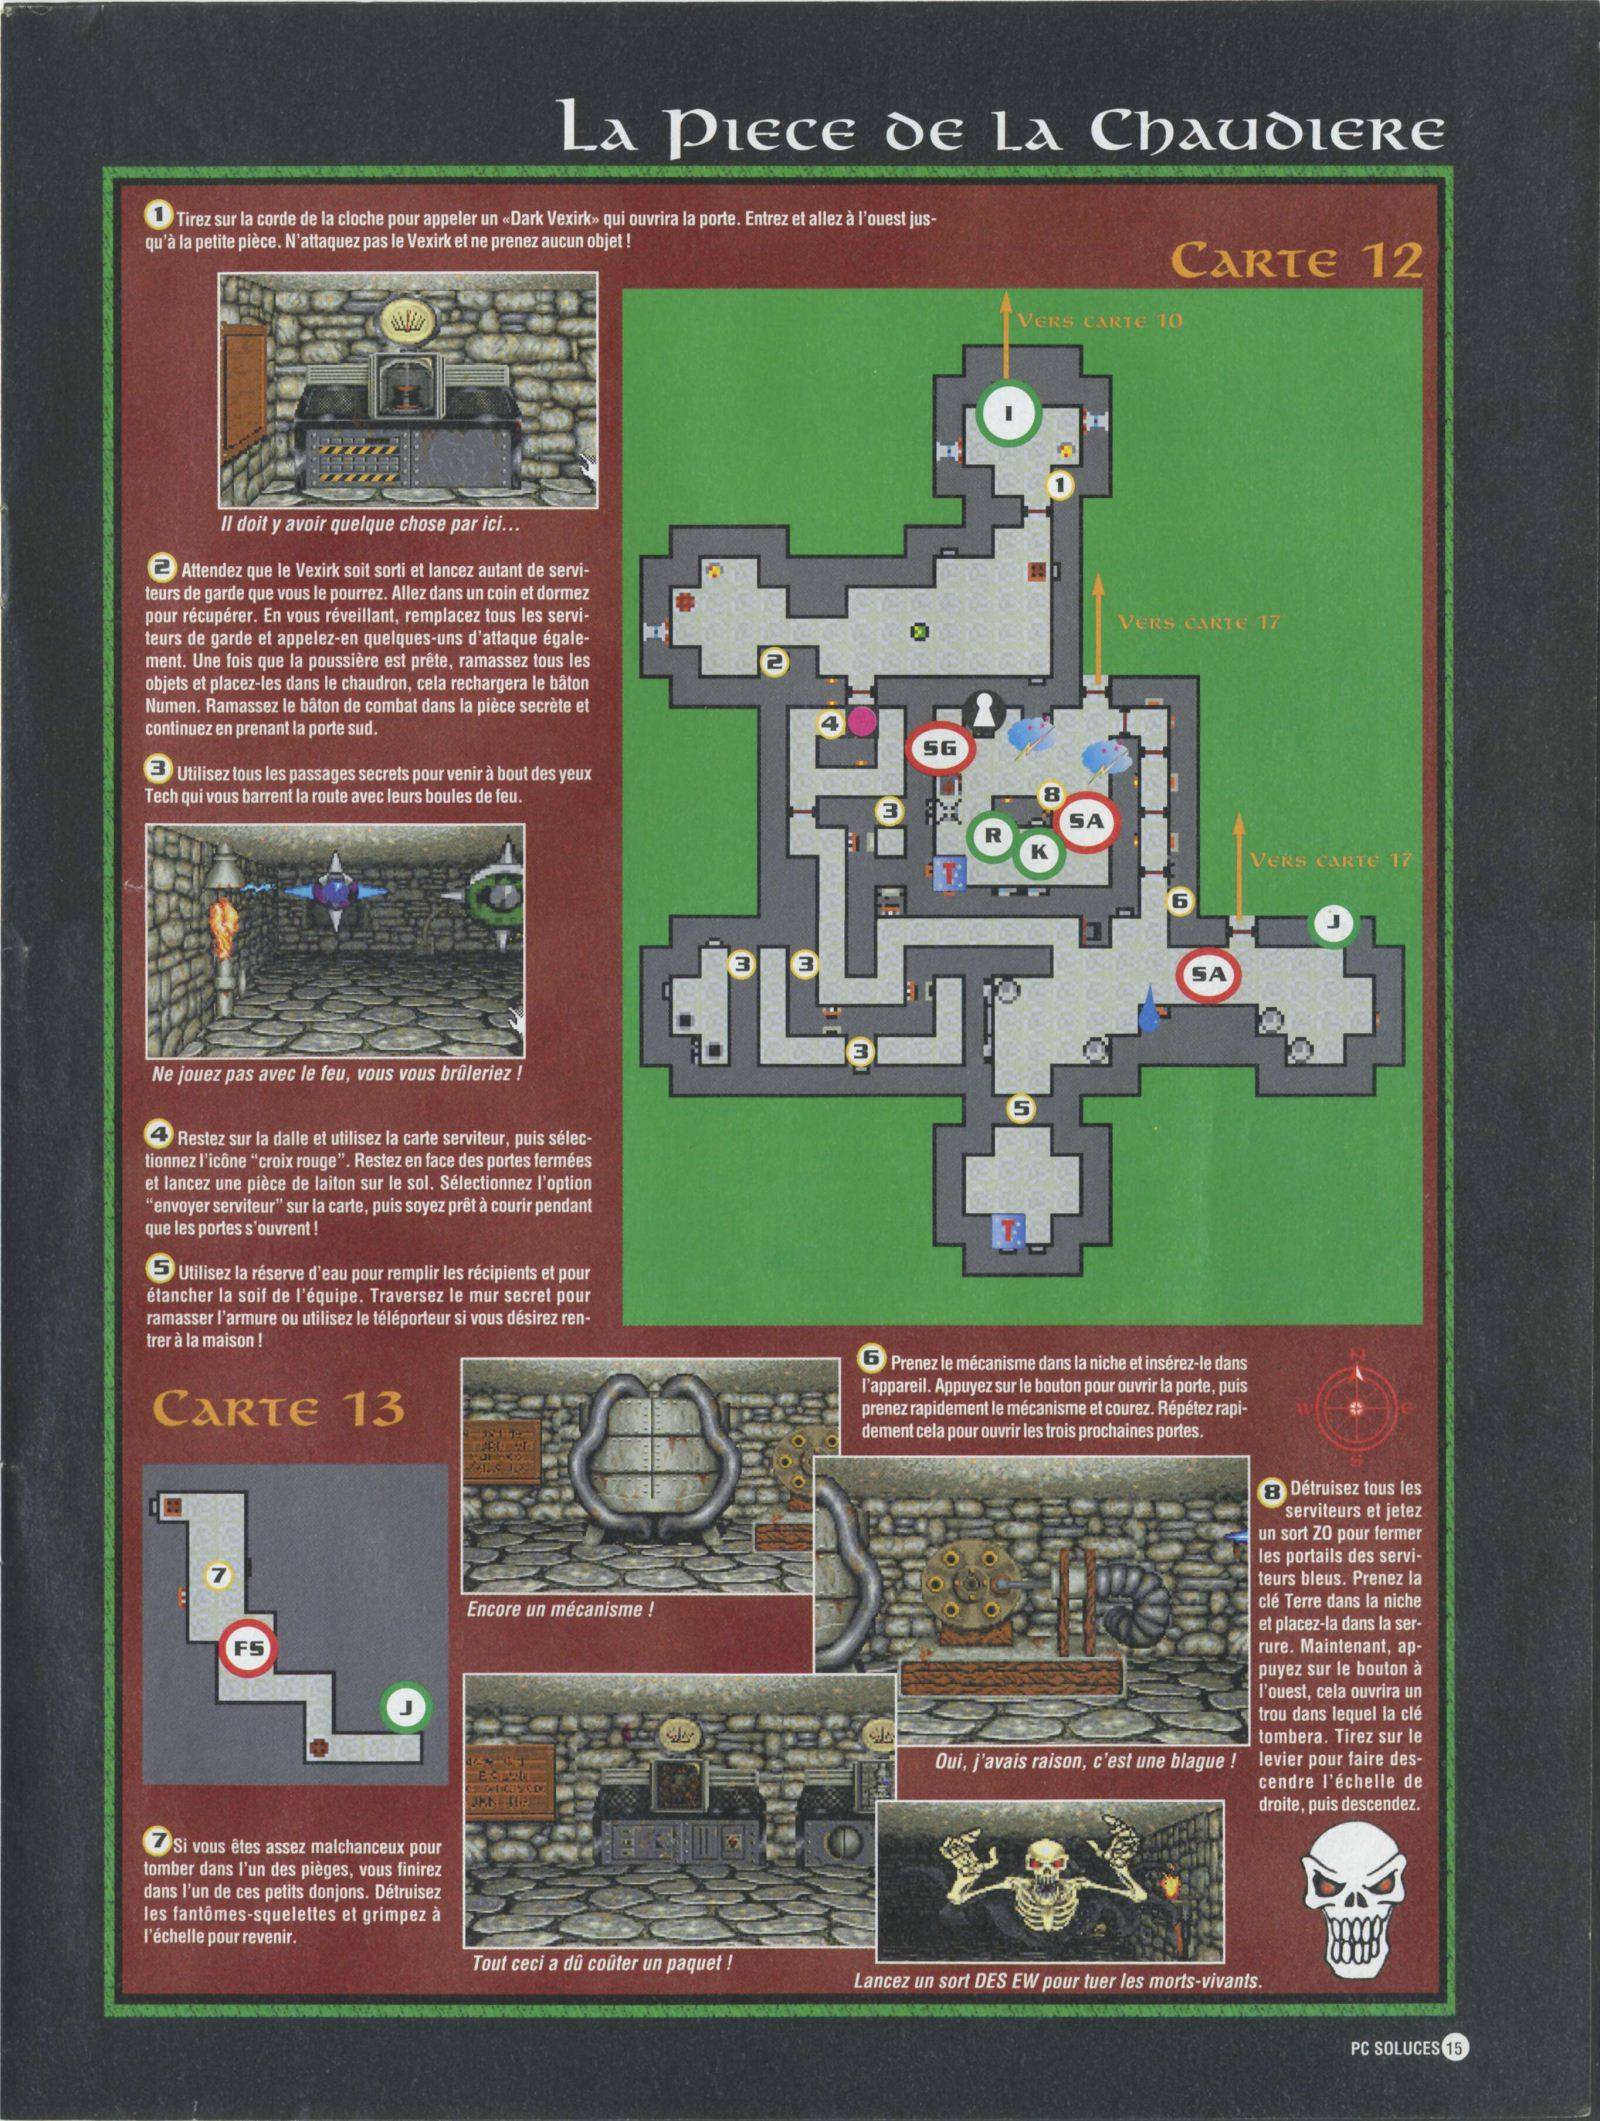 Dungeon Master II solution published in French magazine 'PC Soluces', Issue#1, February-March 1996, Page15